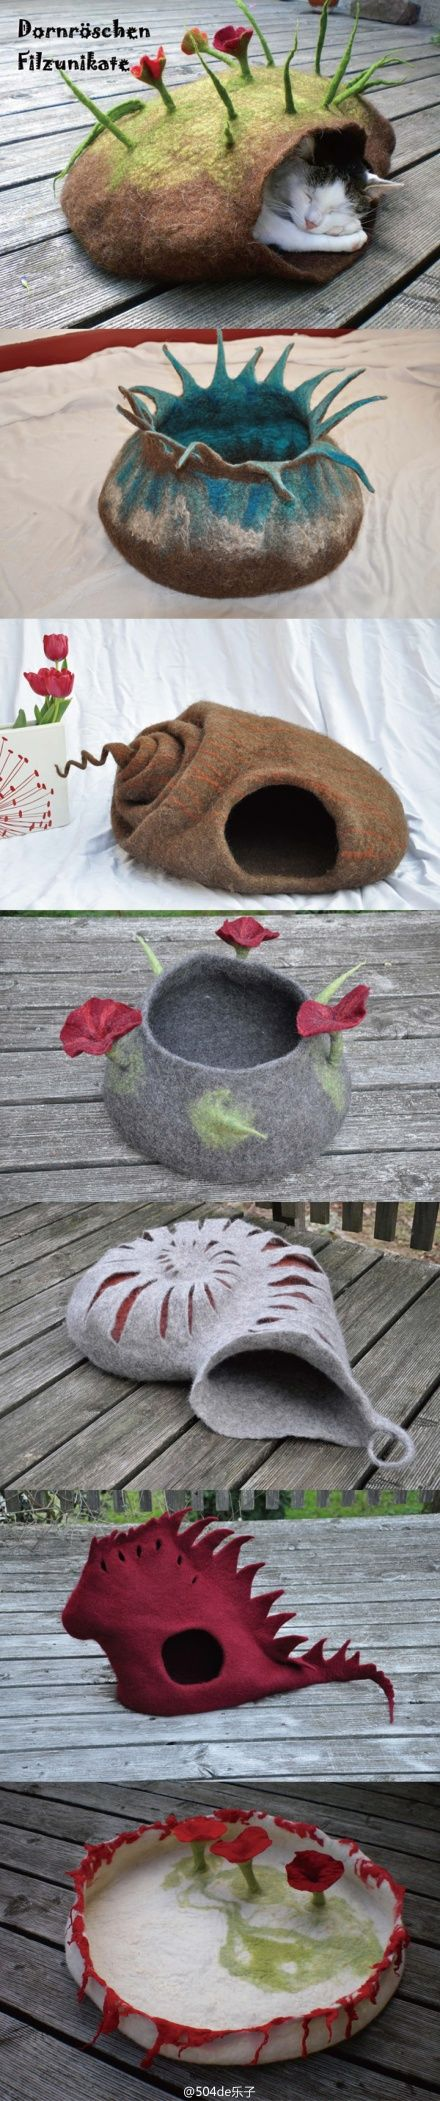 "felt cat beds  Would love to learn to do felting so I could make one of these for my ""grandkitties""! @Jodi Wissing Wissing Wissing Wissing Wissing Wissing Porter"